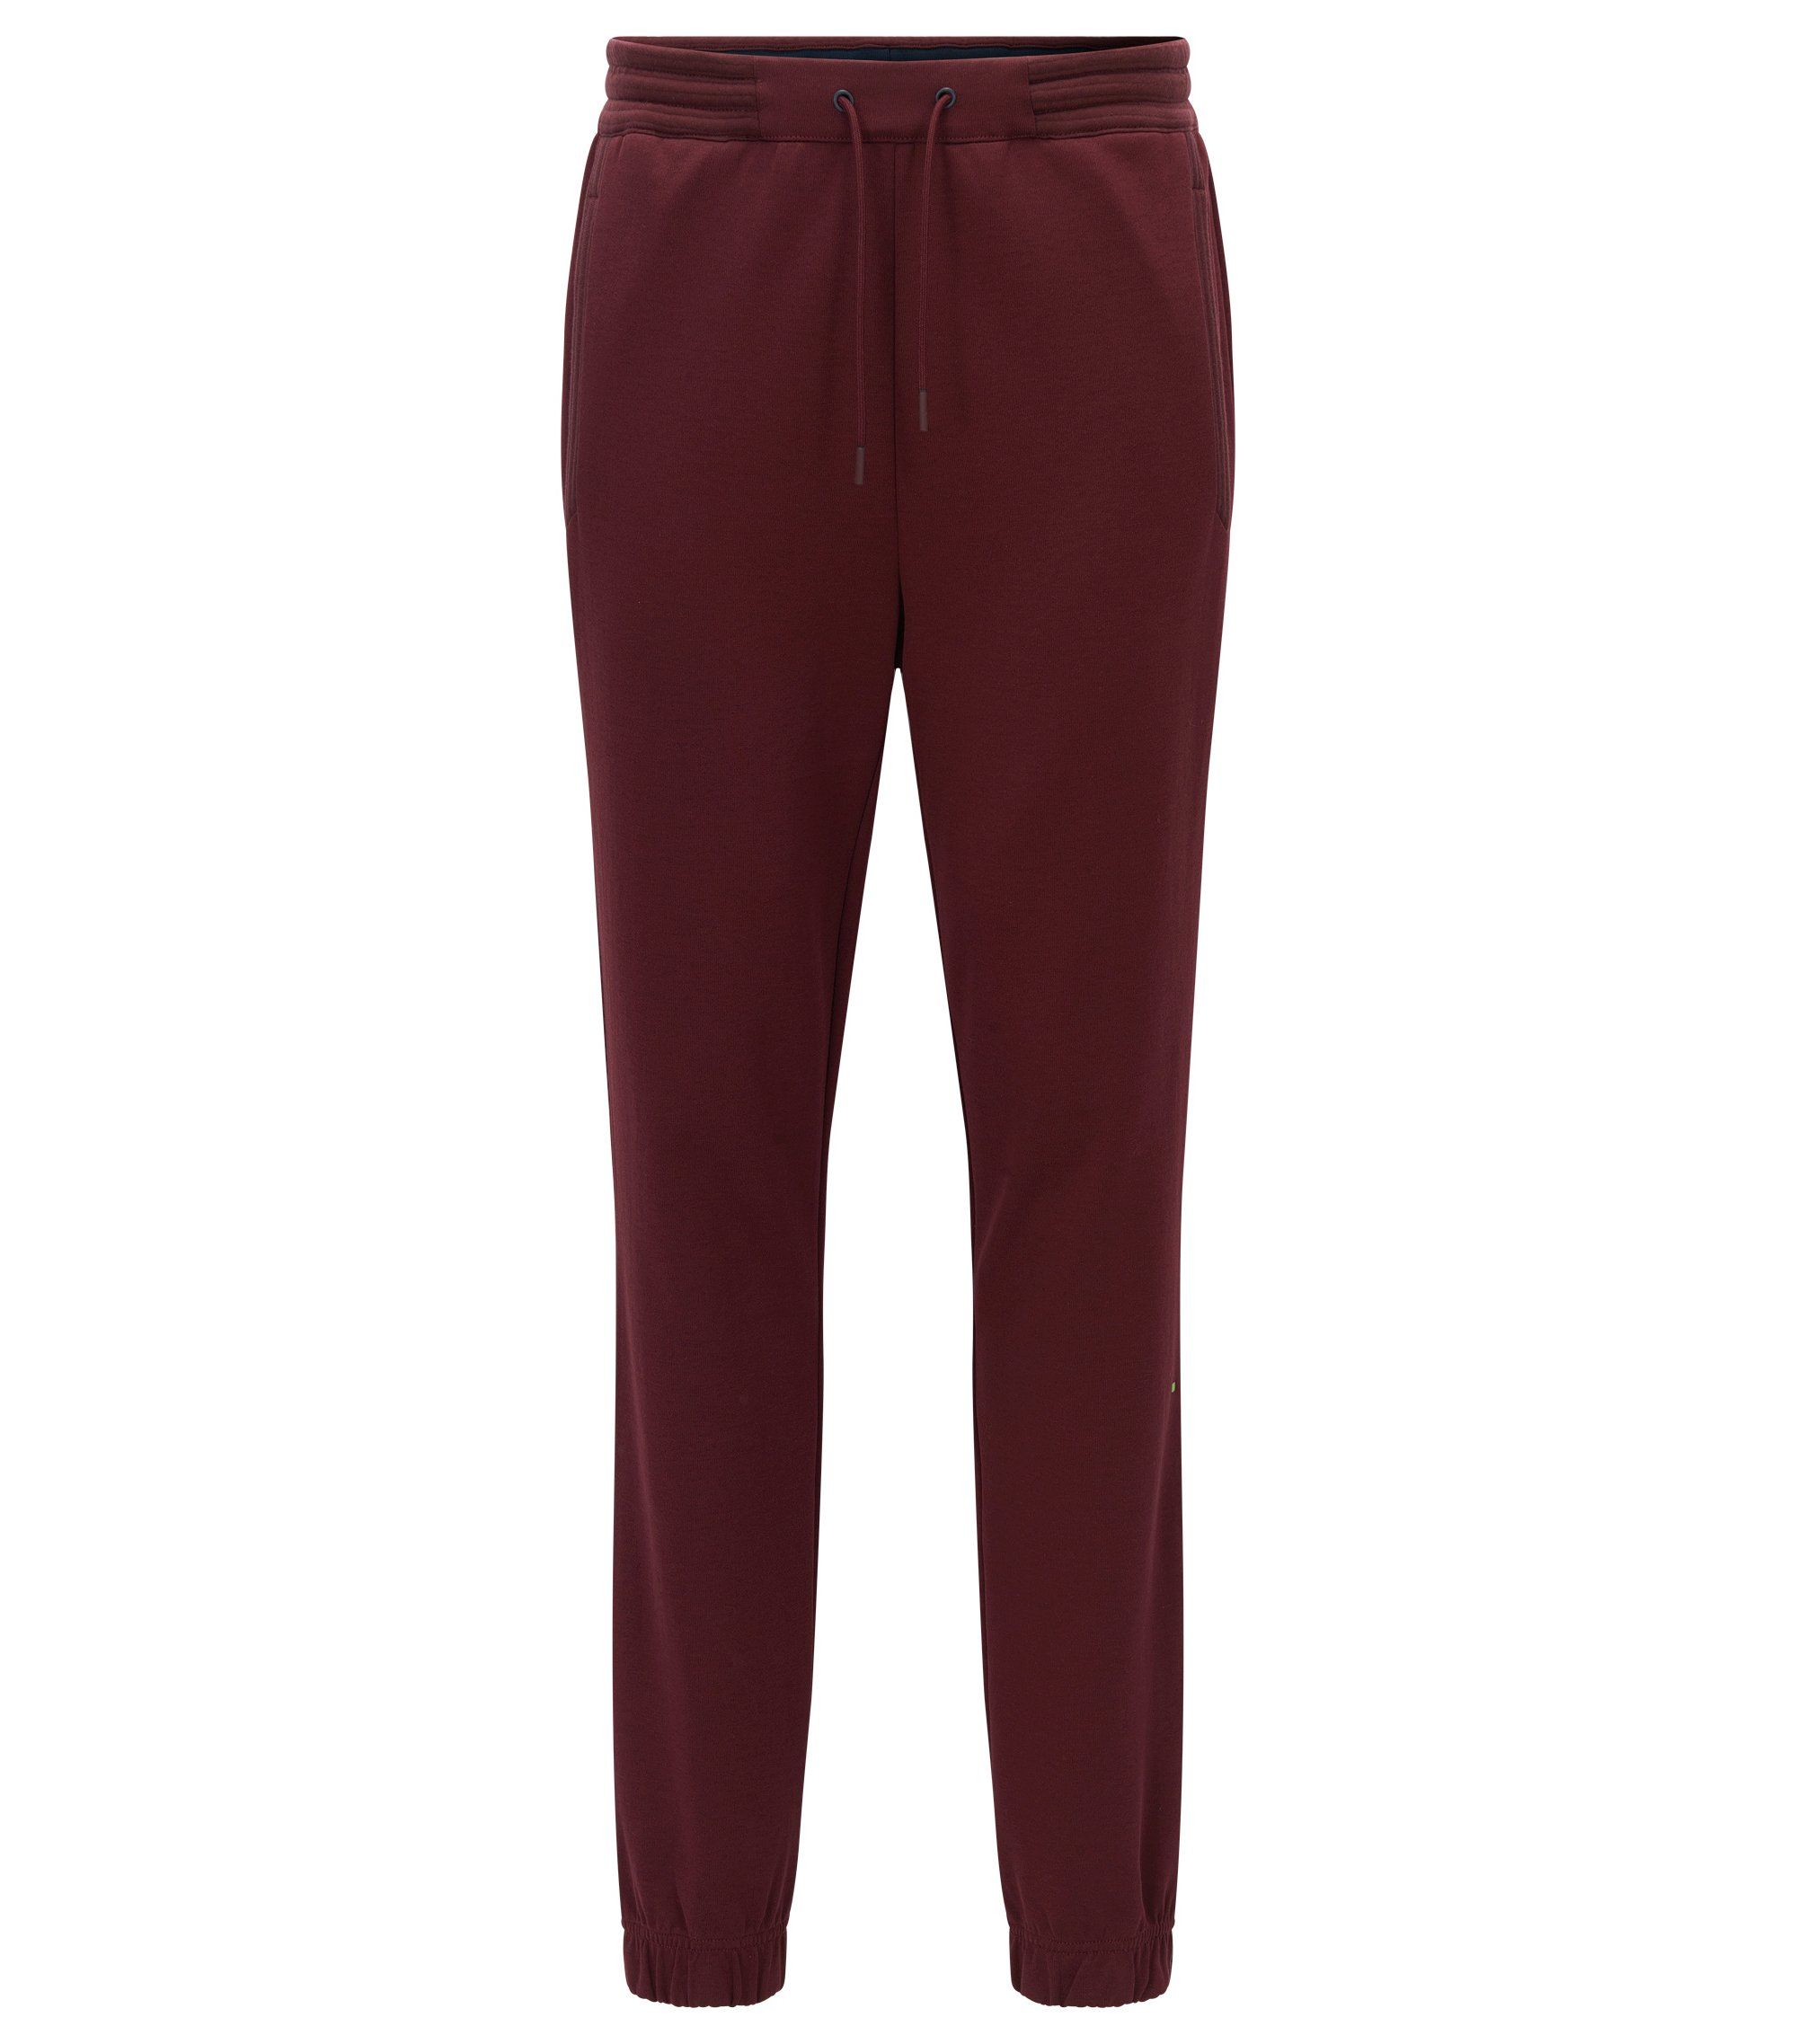 Pantaloni da jogging regular fit in misto cotone, Rosso scuro